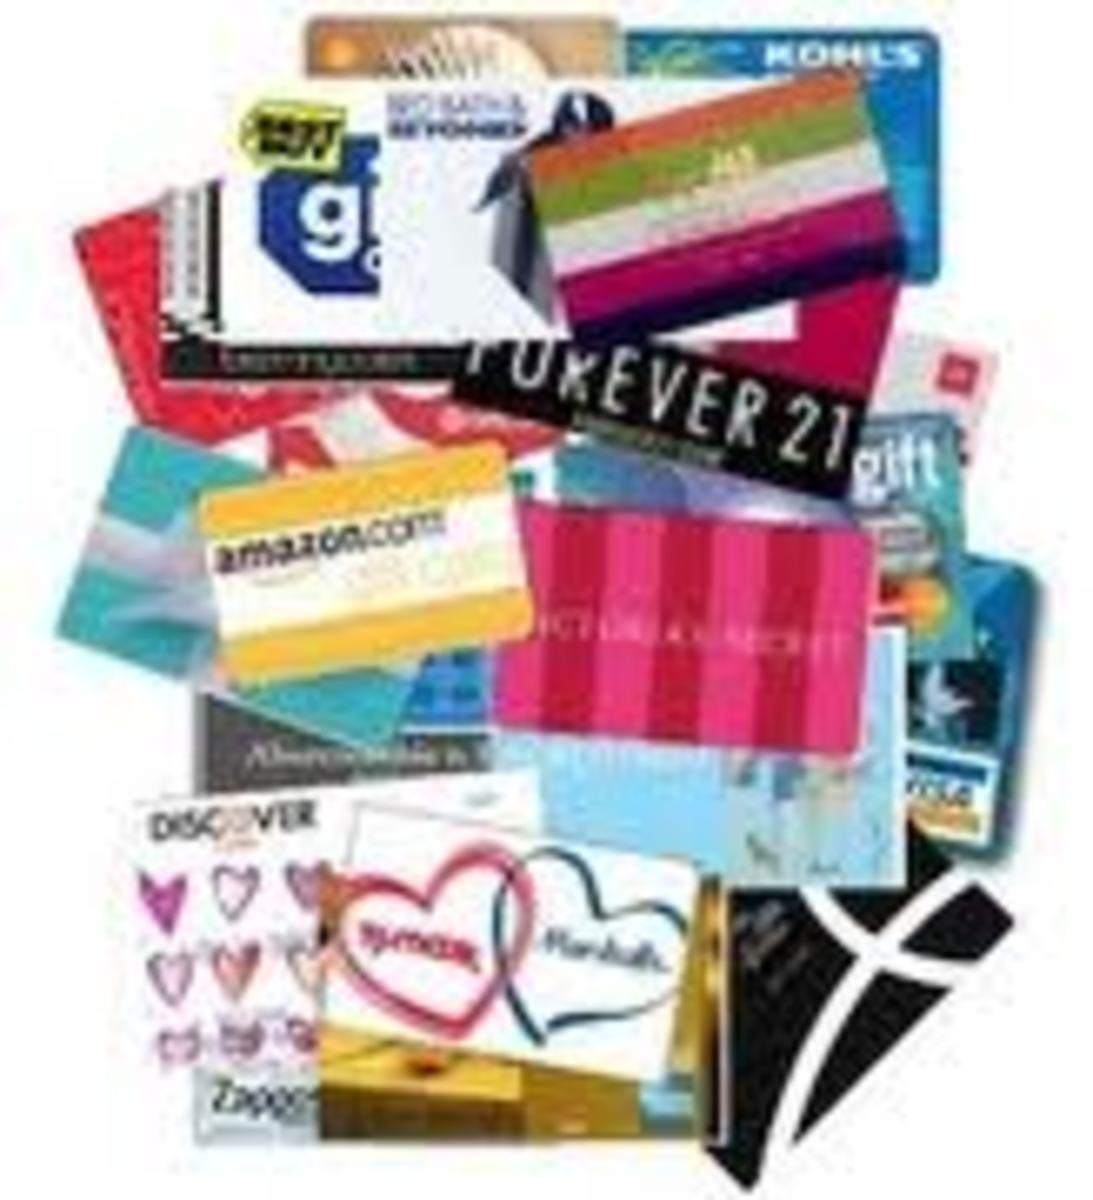 Unwanted Gift Cards Can Be Turned Into Cash or  Traded For Other Gift Cards